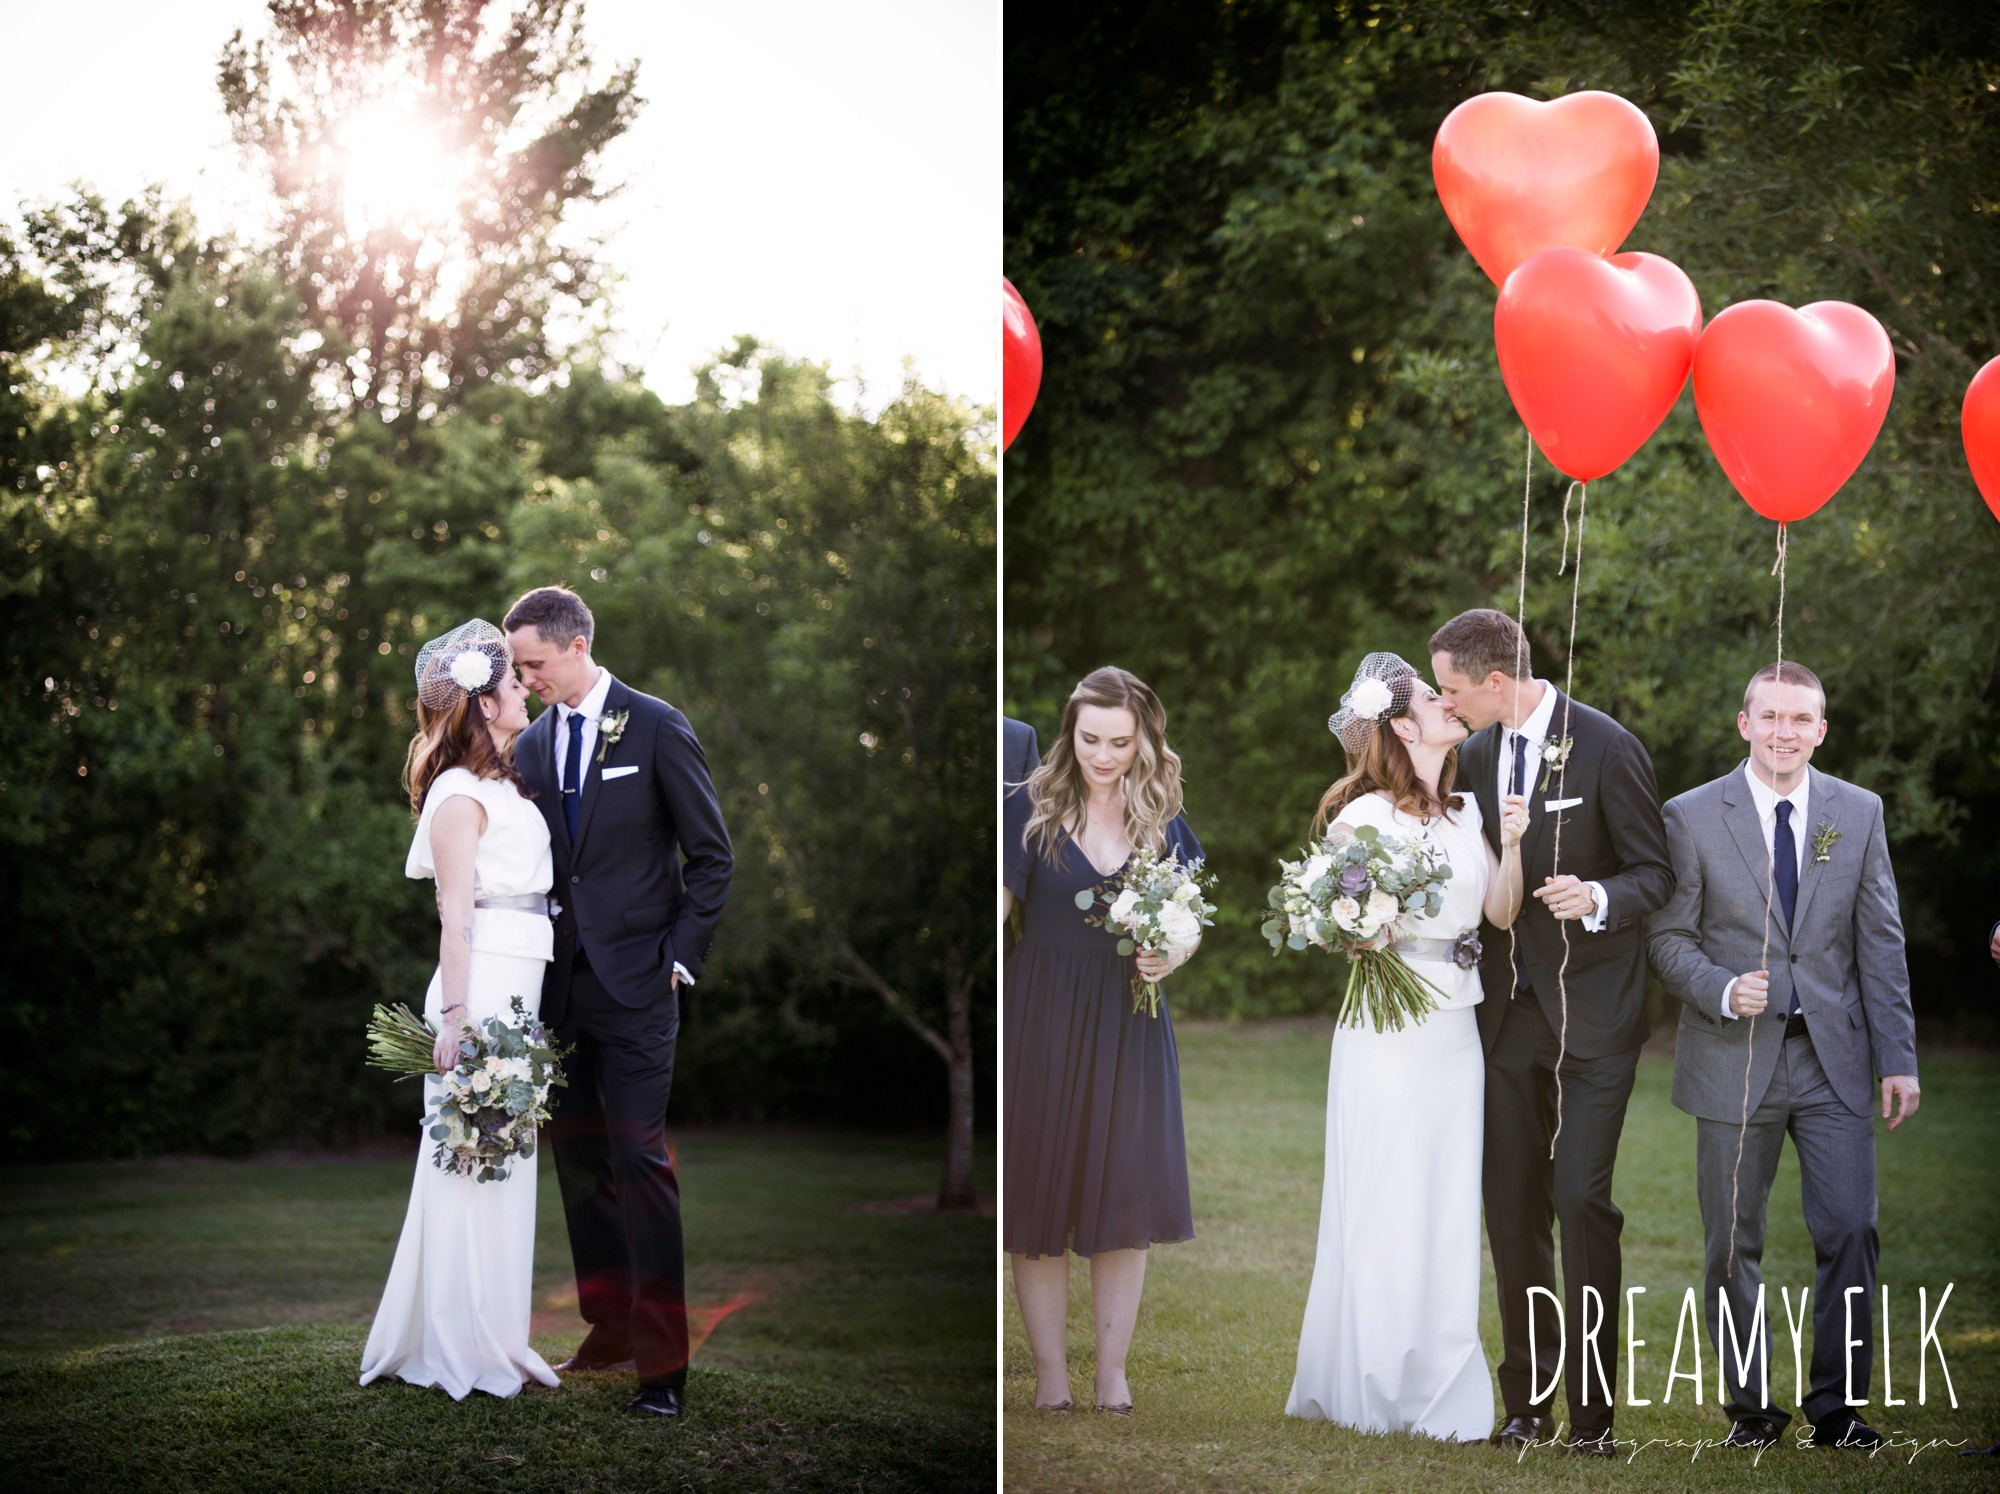 bride and groom portraits, red heart balloons, unforgettable floral, white and green succulent wedding bouquet, bride, handmade wedding dress, two piece wedding dress, gray sash, bird cage veil, outdoor april spring wedding photo, double creek crossing, college station, texas, austin wedding photographer {dreamy elk photography and design}